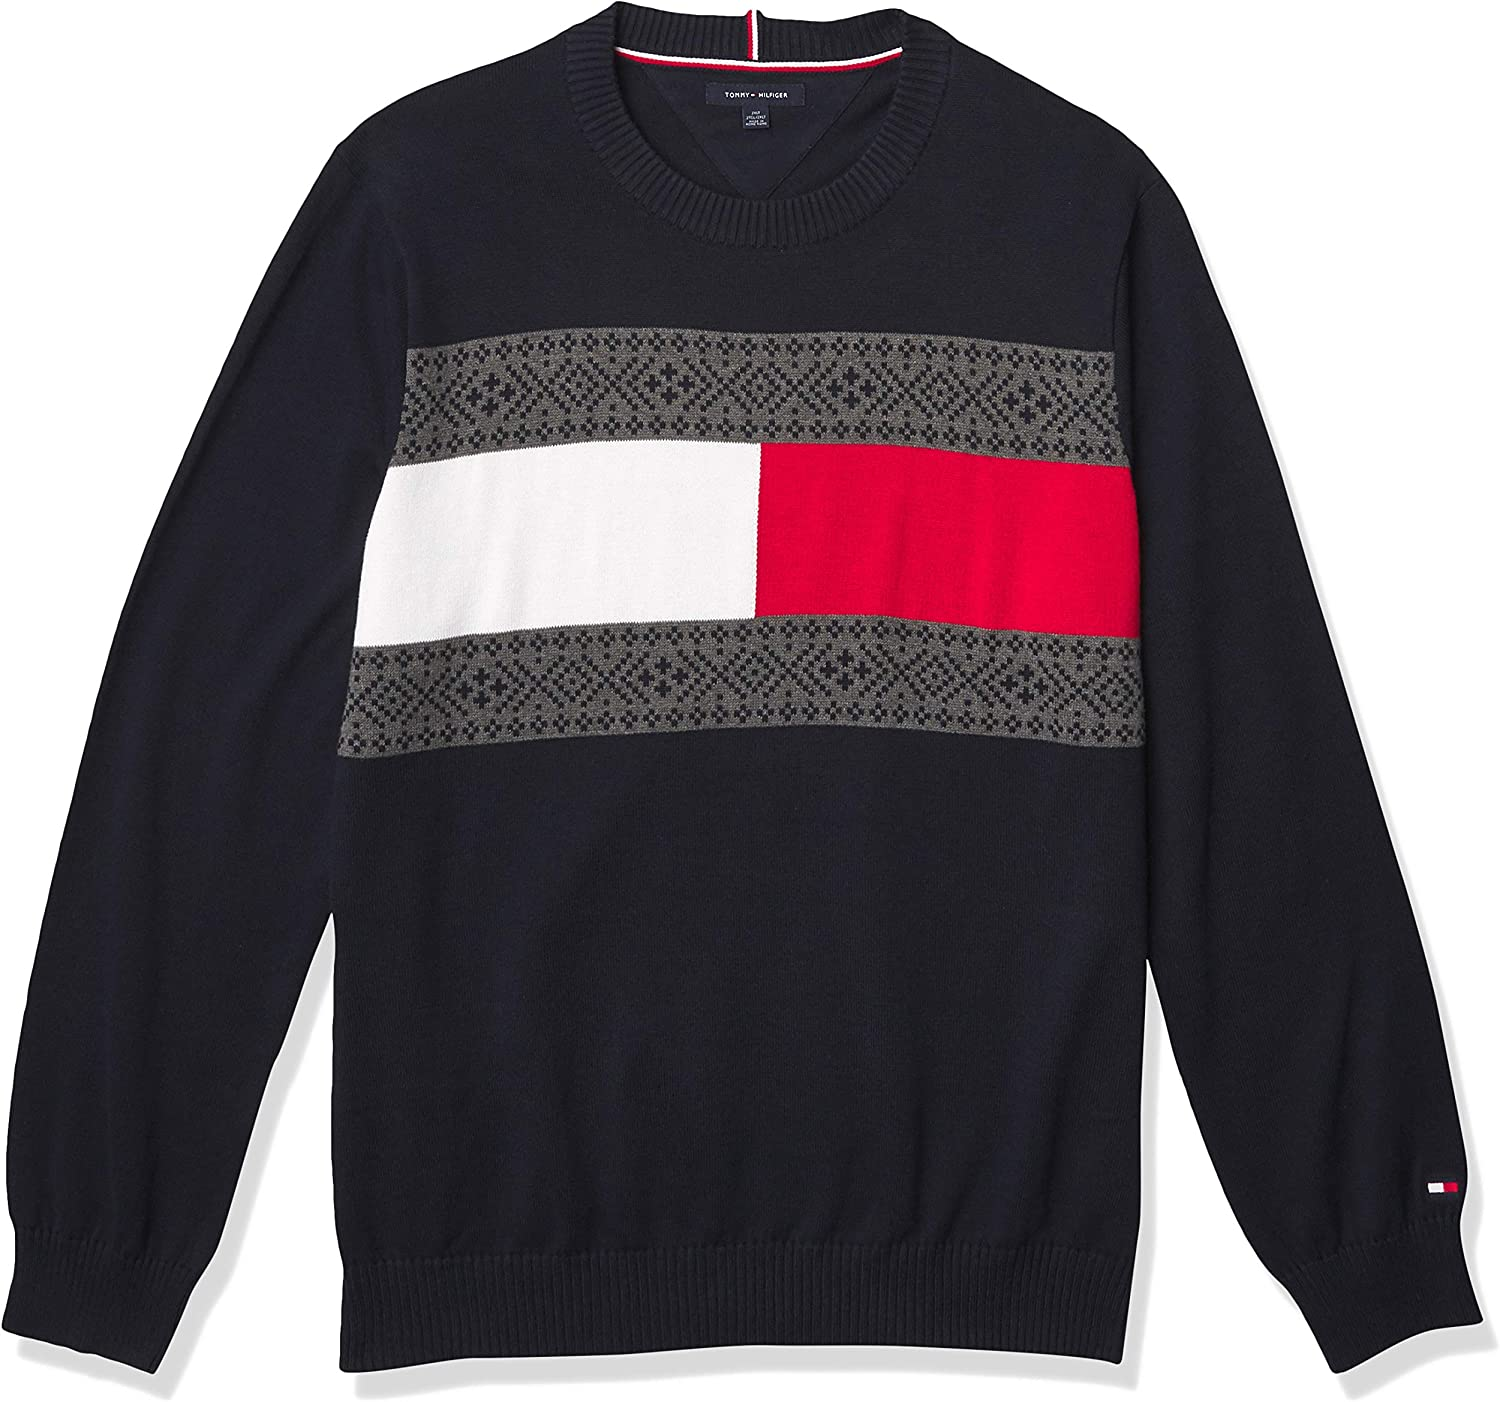 Tommy Hilfiger Men's Big and Tall Tommy Flag Crewneck Sweater